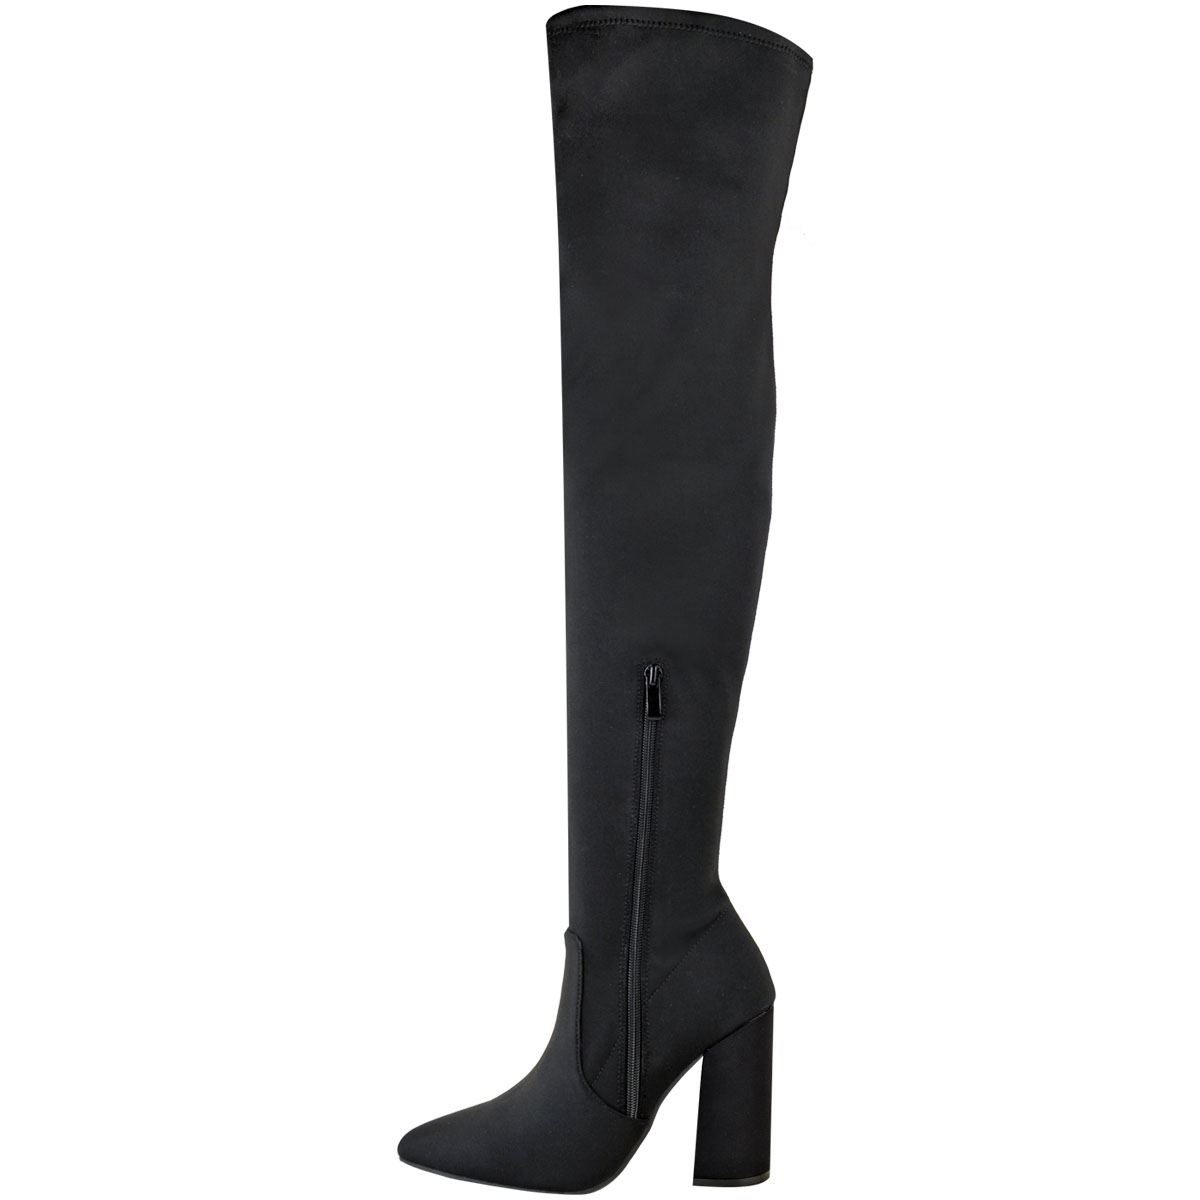 Womens-Ladies-Pointy-Toe-Block-Heels-Over-The-Knee-Stretch-Thigh-High-Boots-Size